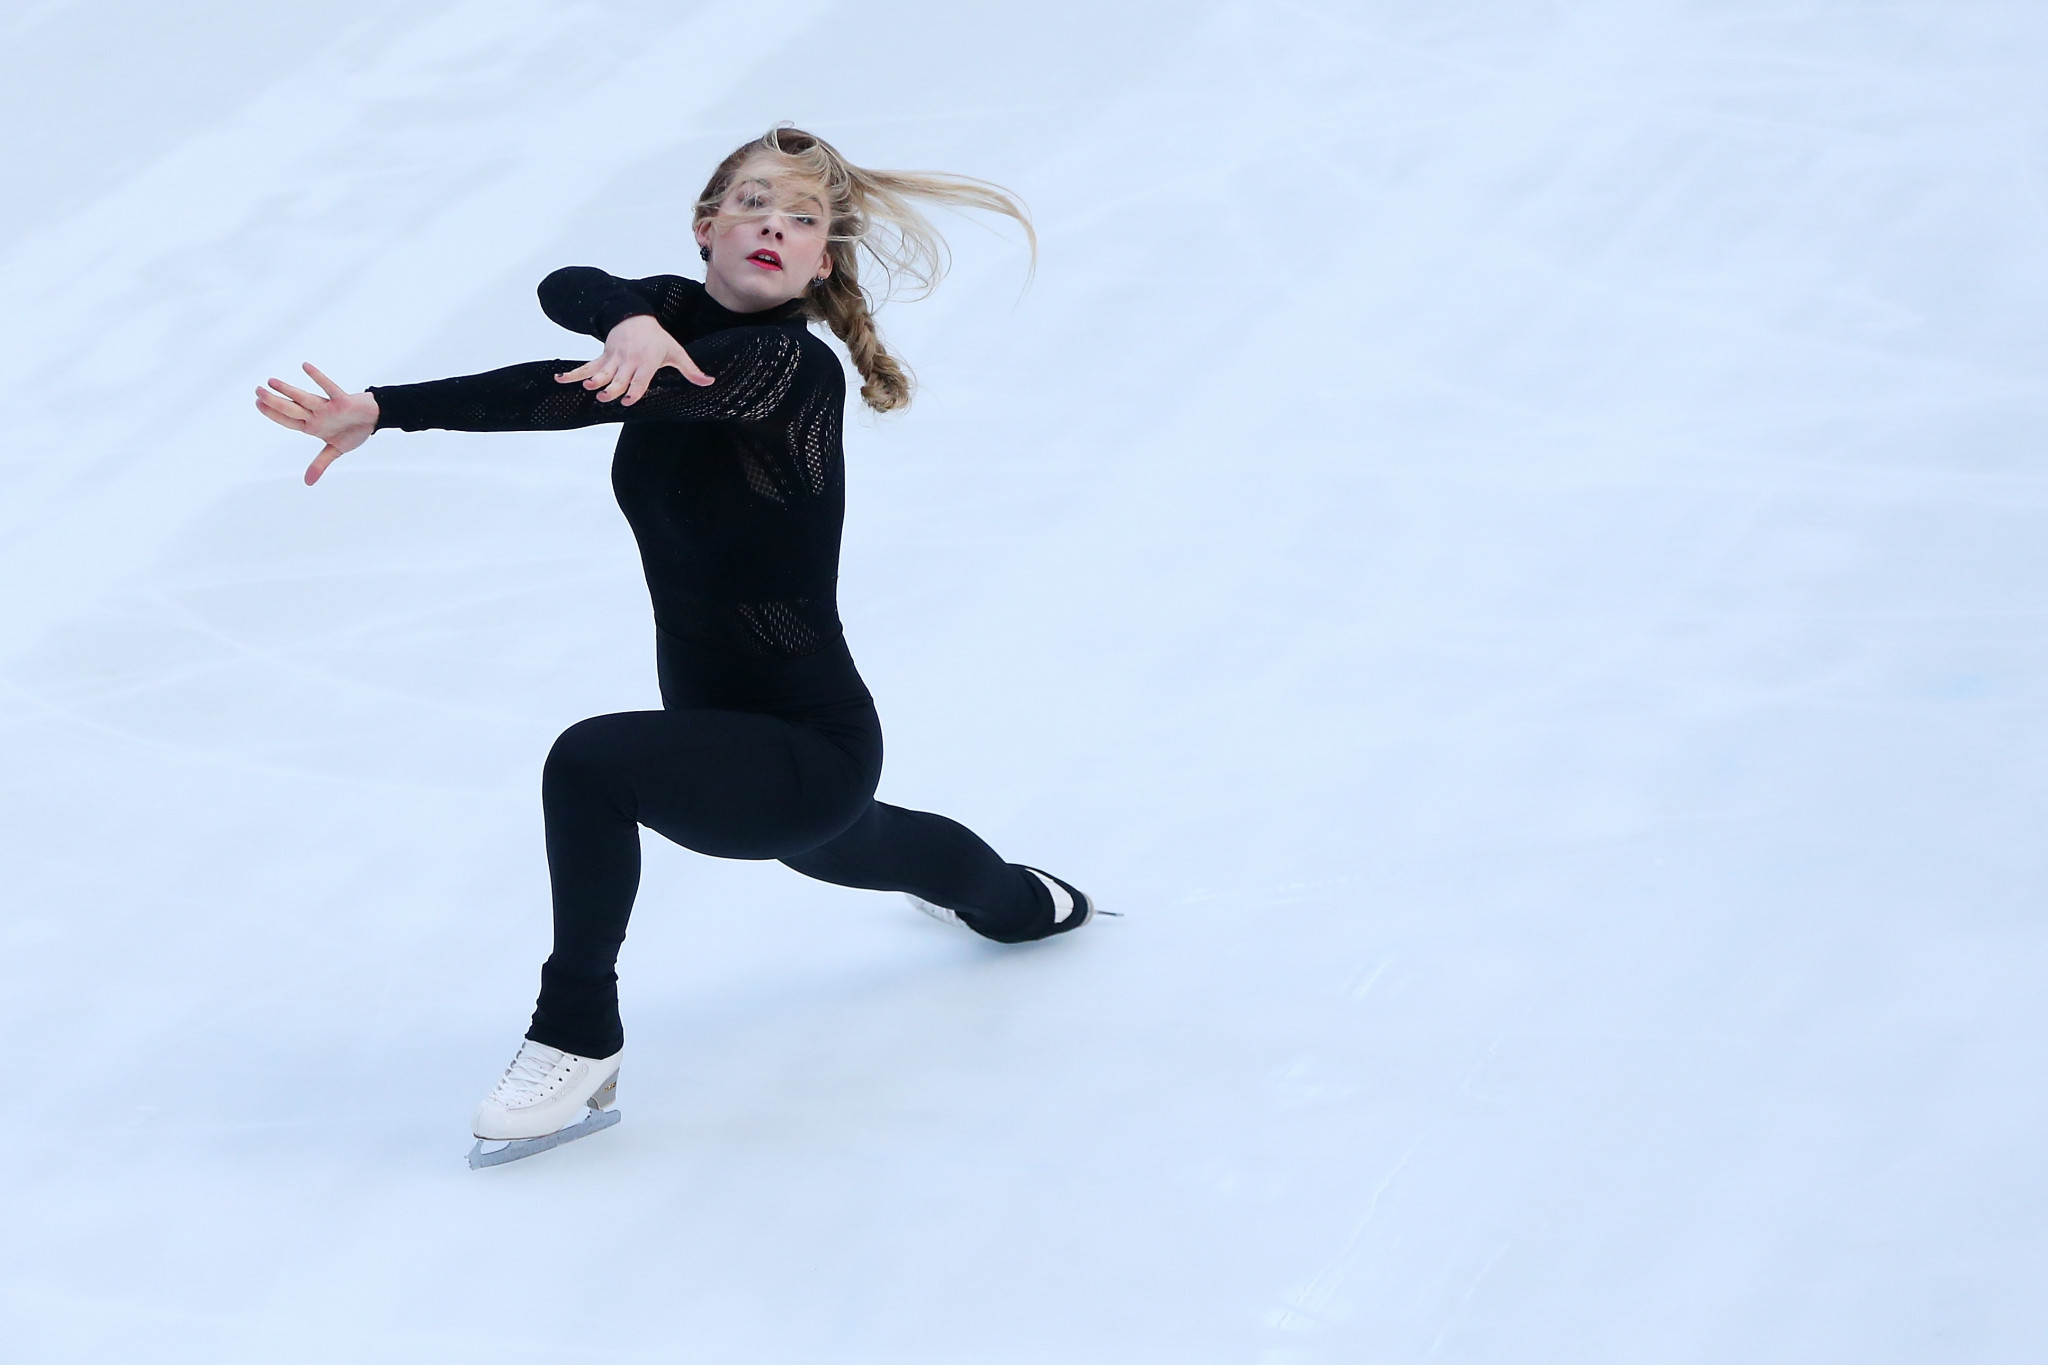 Figure skater Gold's Pyeongchang 2018 hopes end after ...Gracie Gold Depression